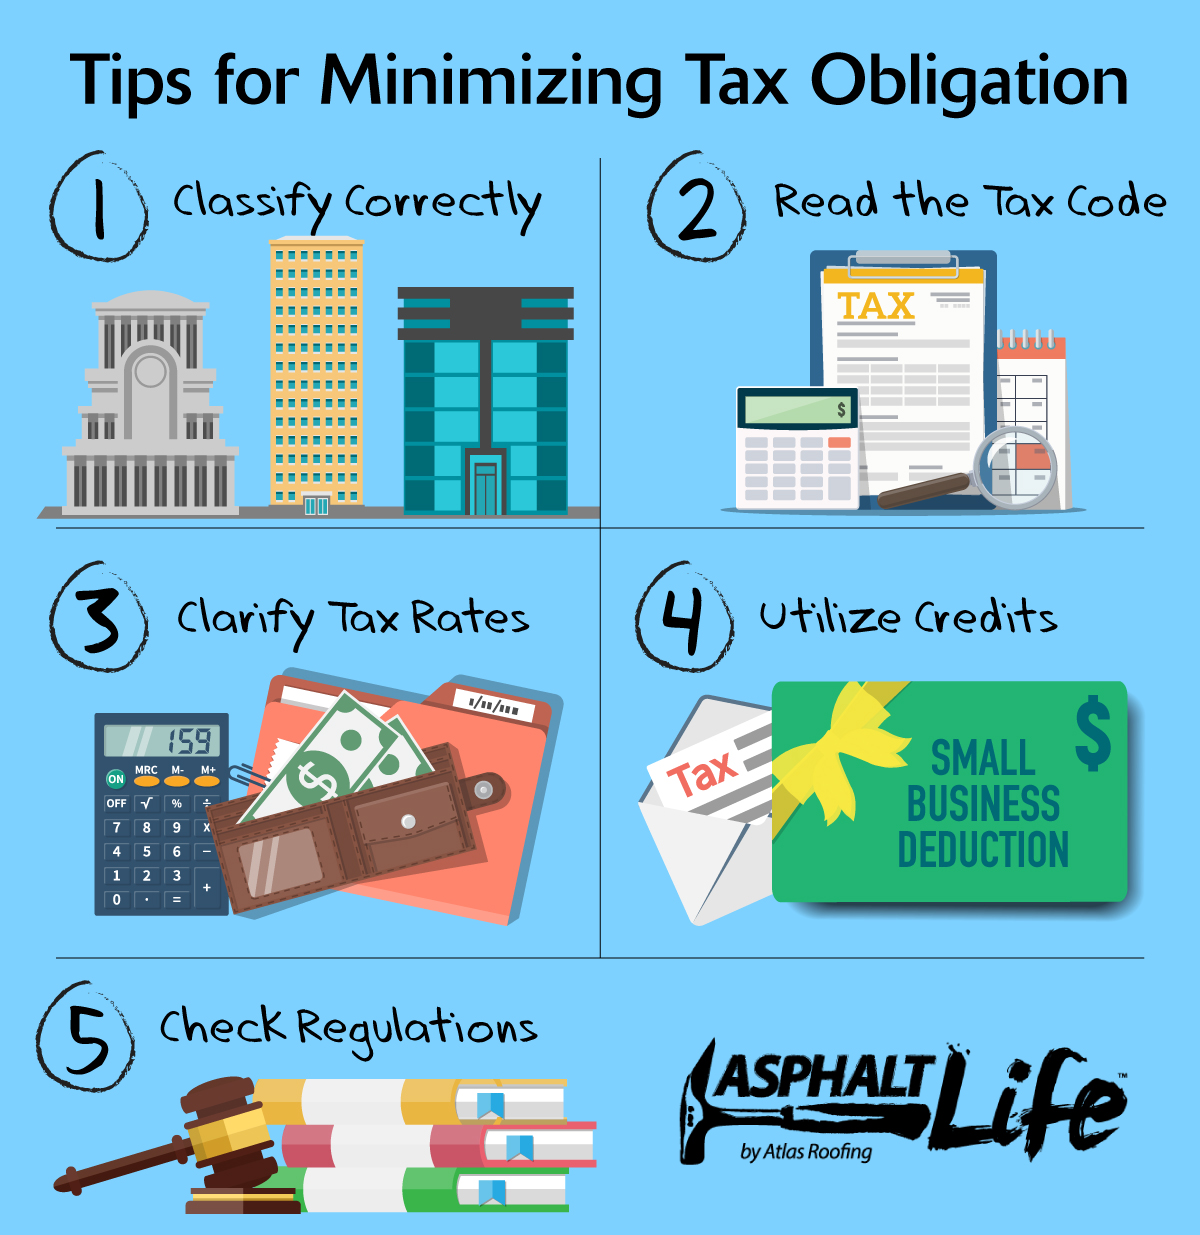 Tips to Minimize Taxes